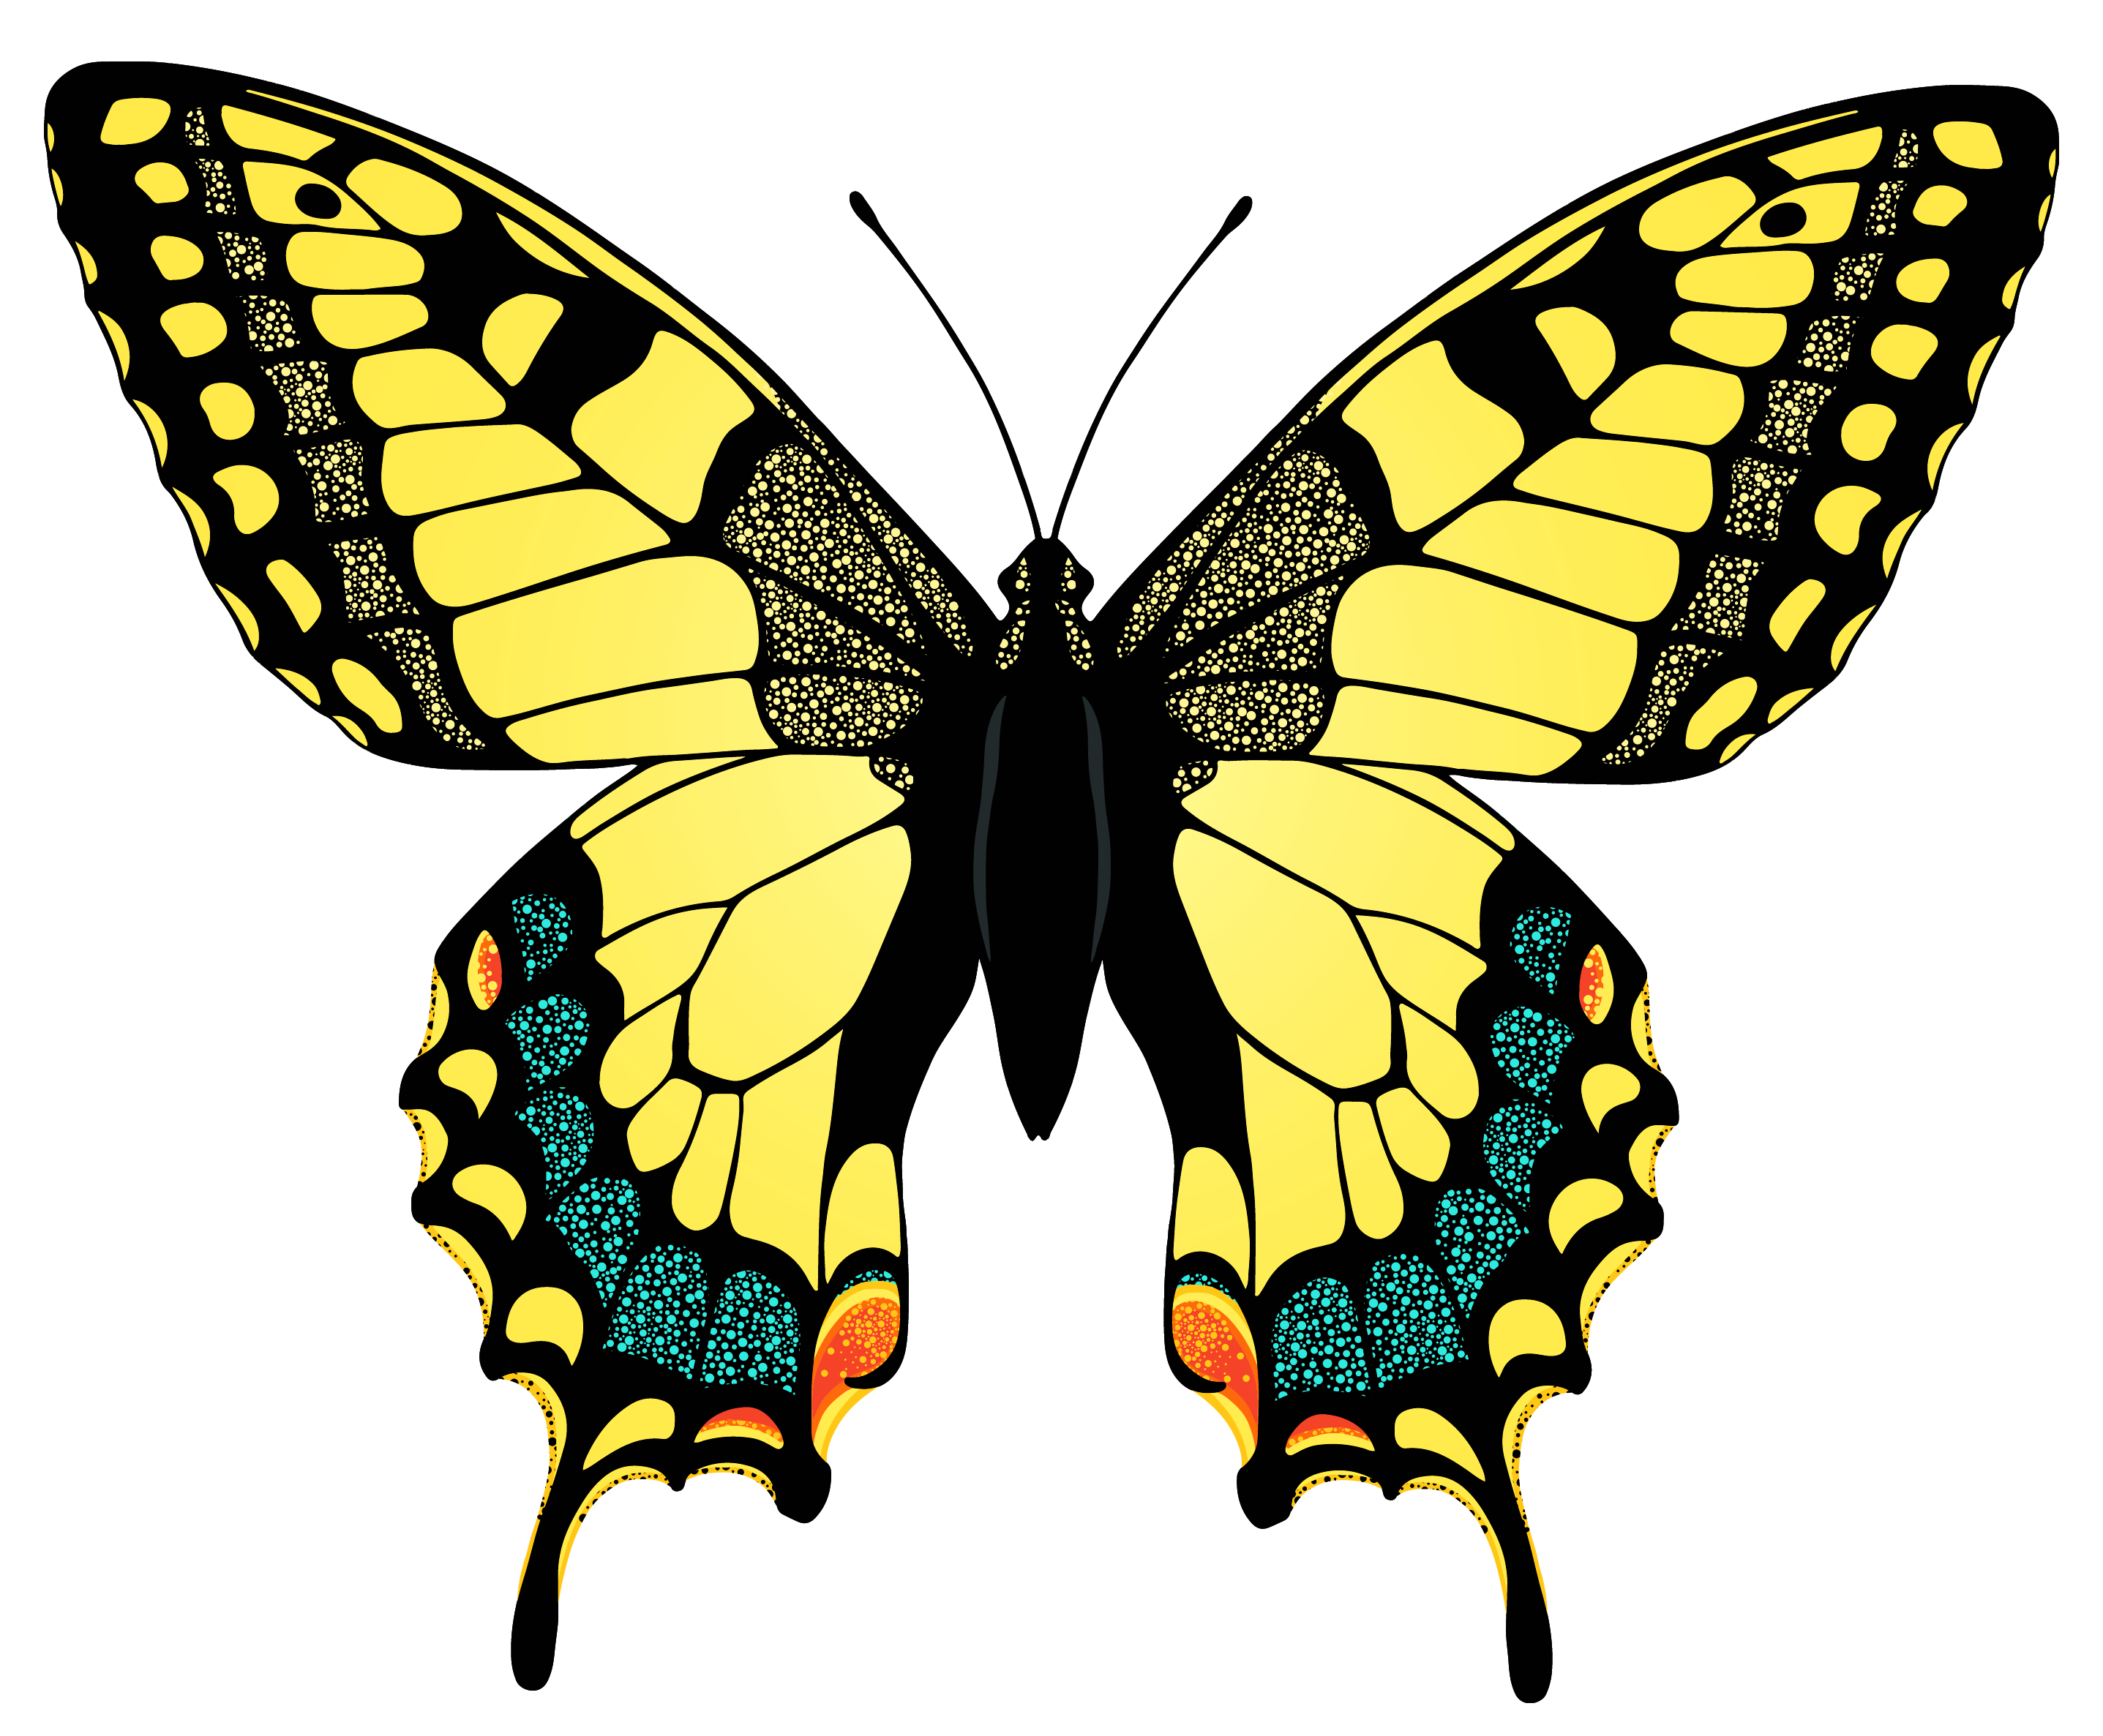 Yellow Butterfly Png Image Butterfly Pictures Butterfly Illustration Yellow Butterfly